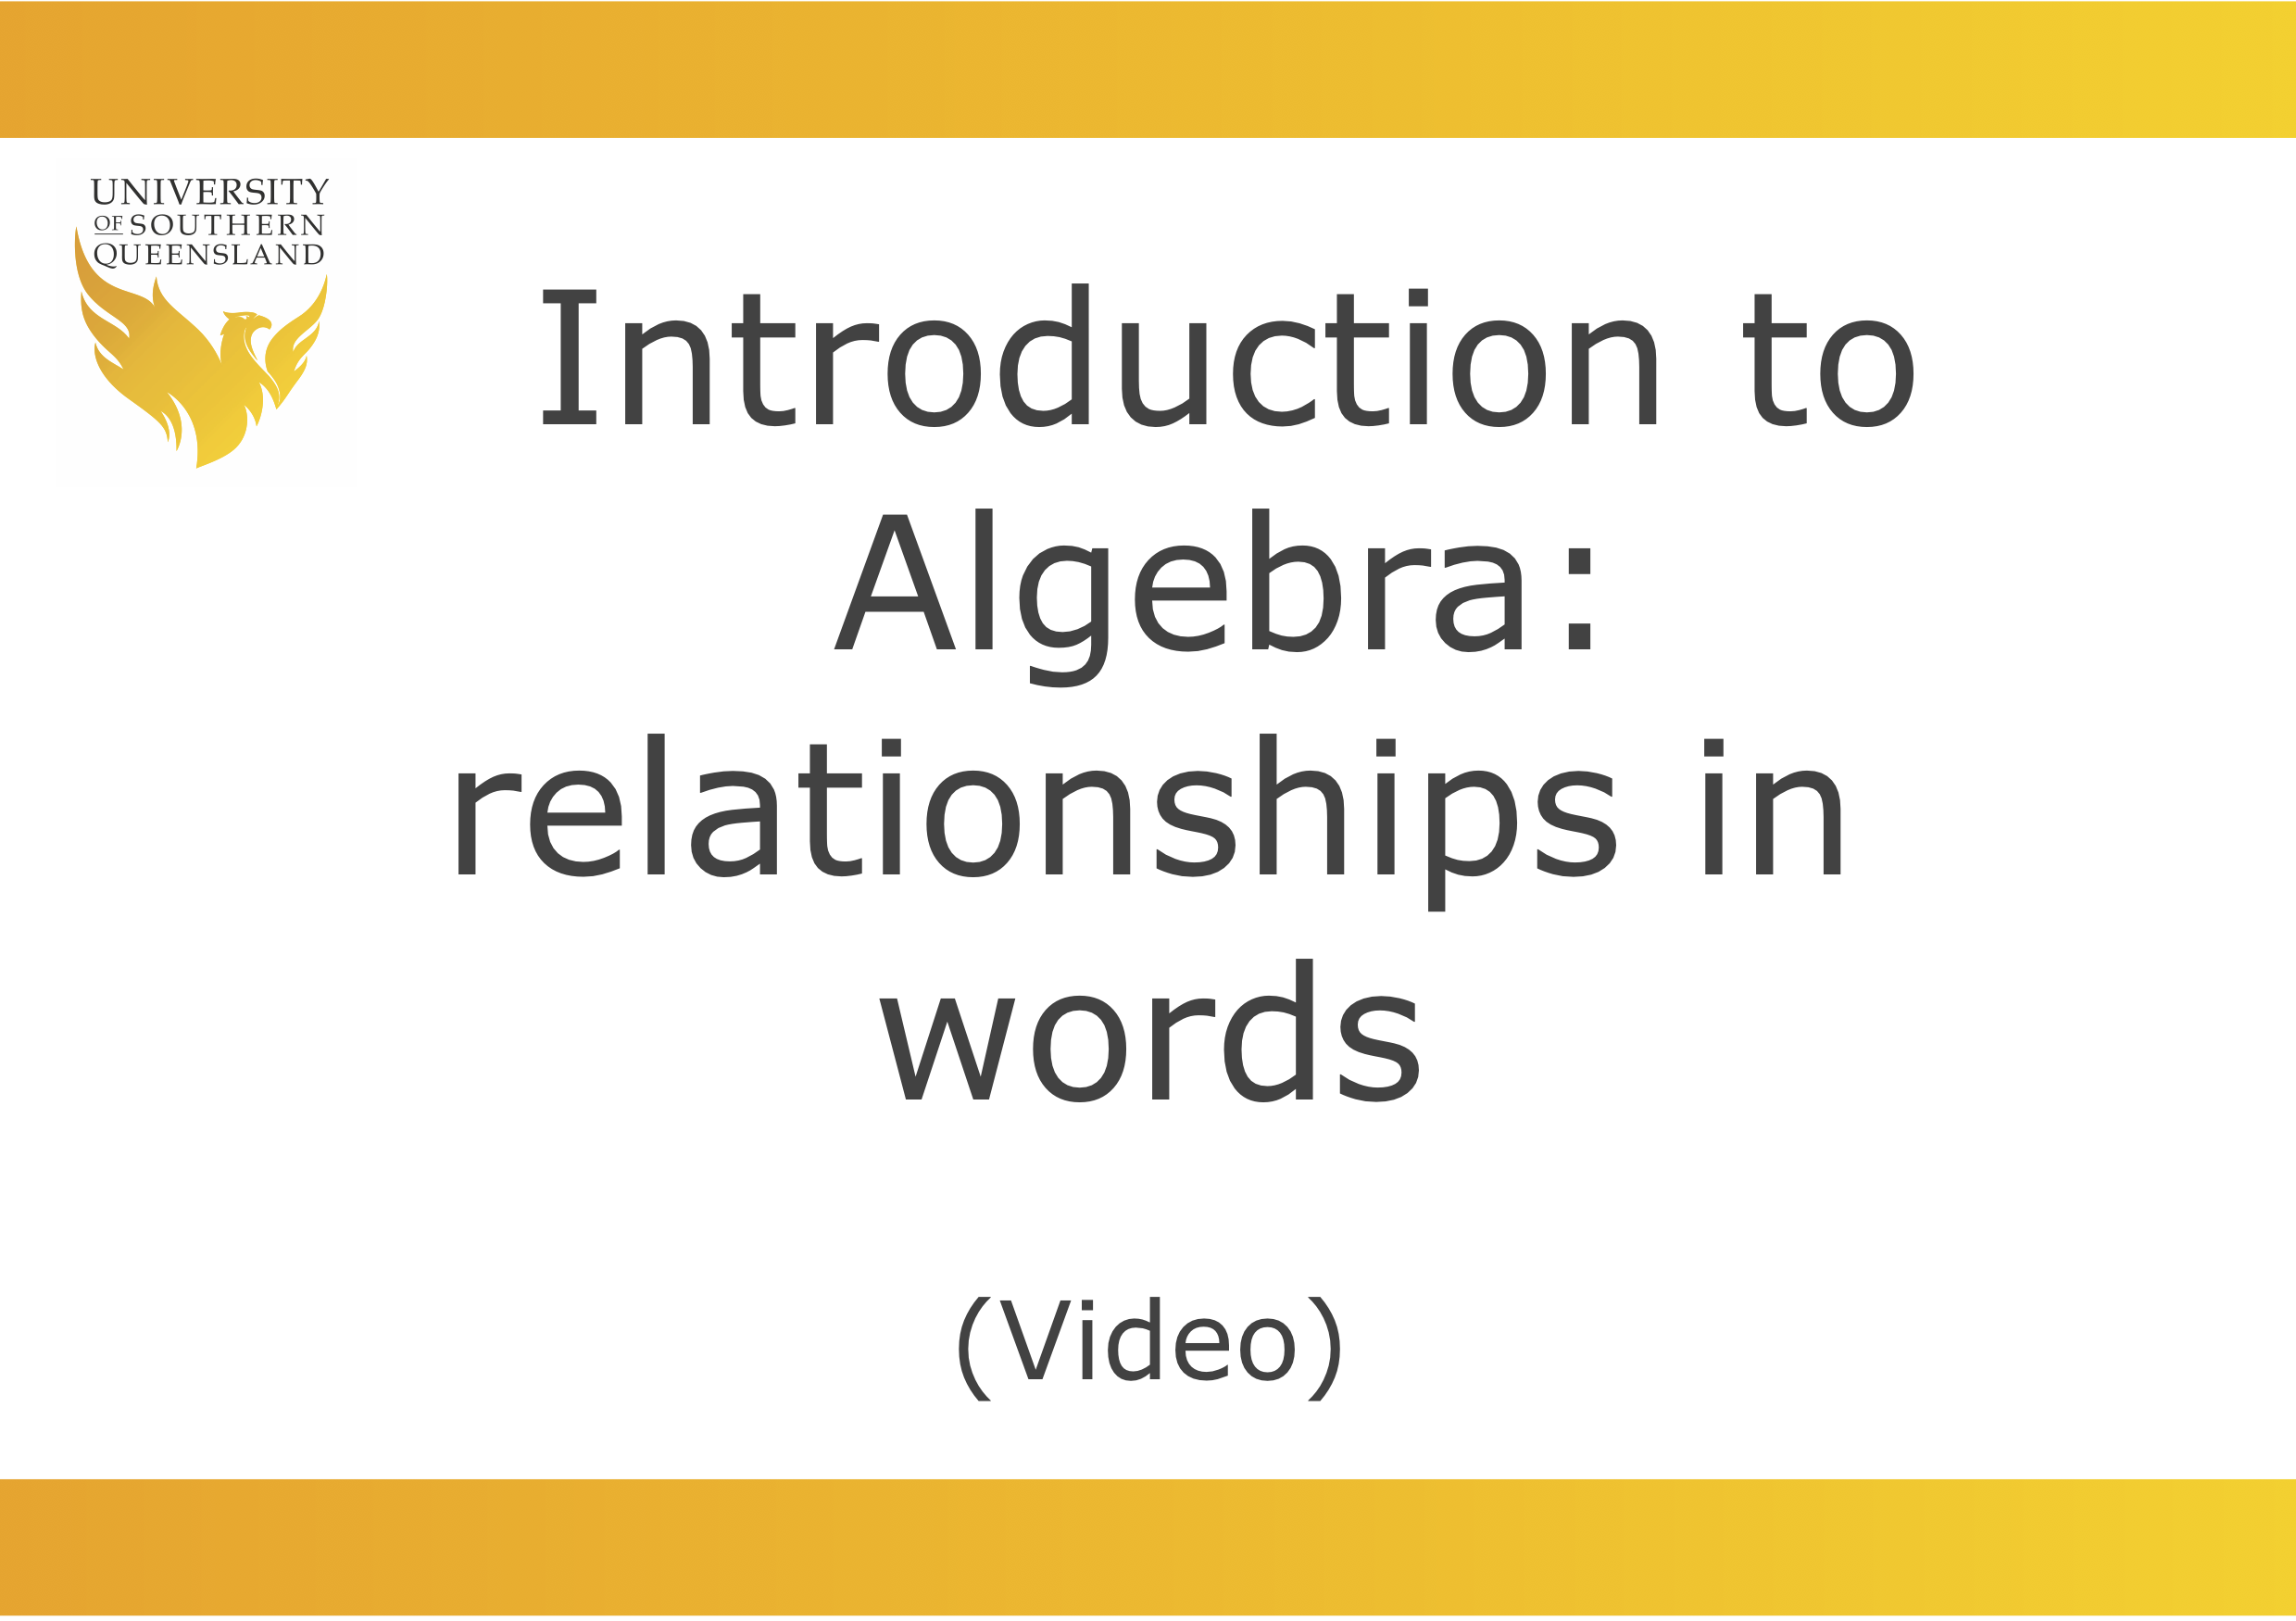 Introduction to Algebra: Relationships in words video